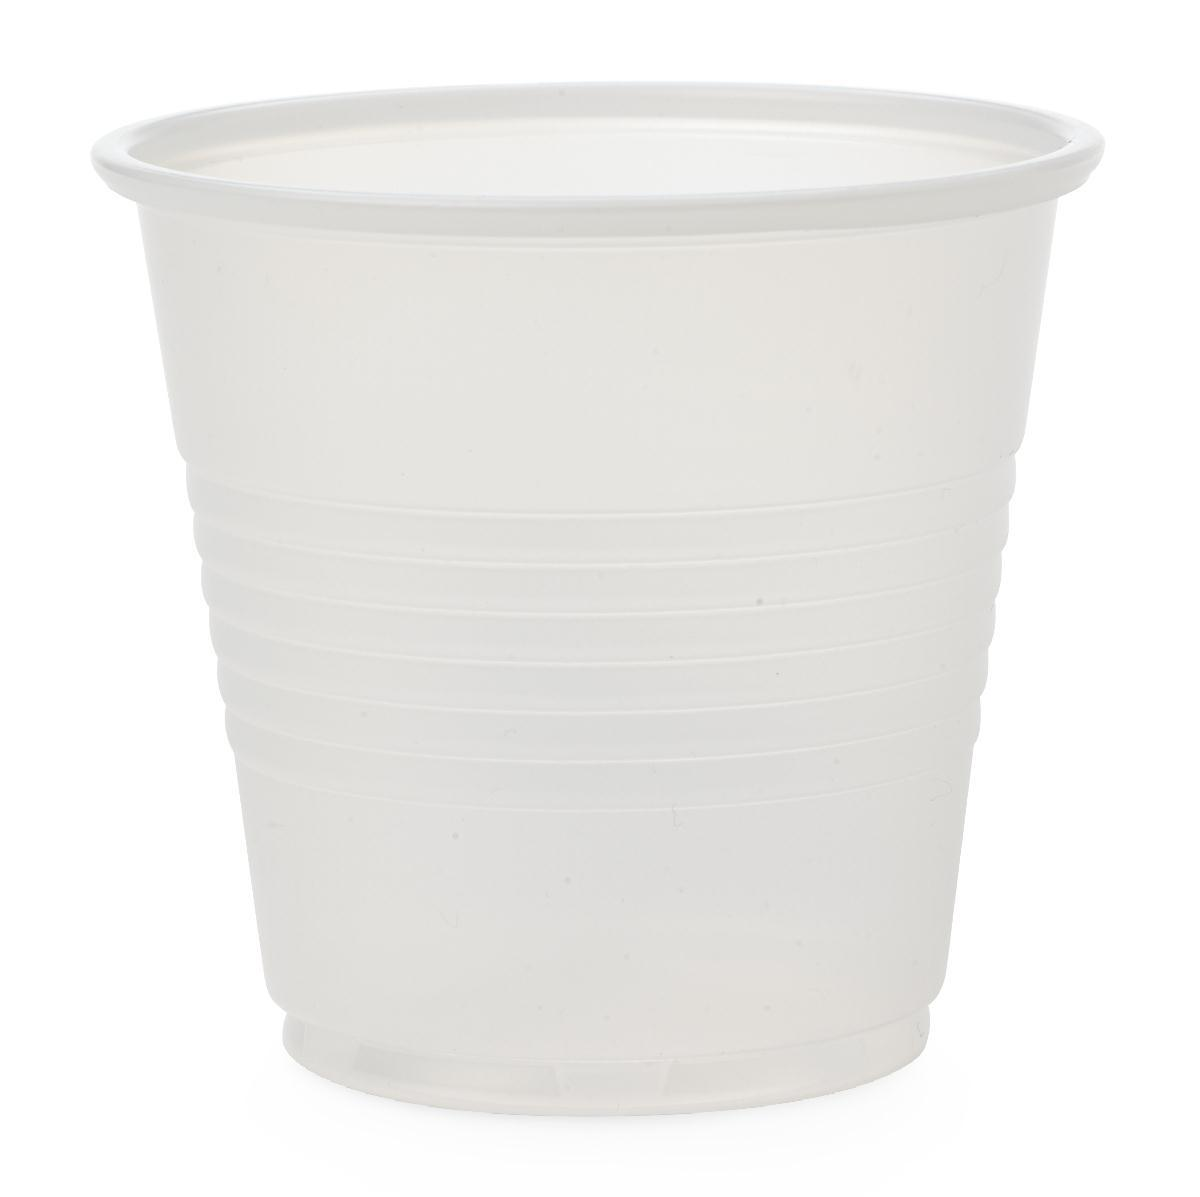 Translucent Plastic Cups Plastic NON030035 Medline